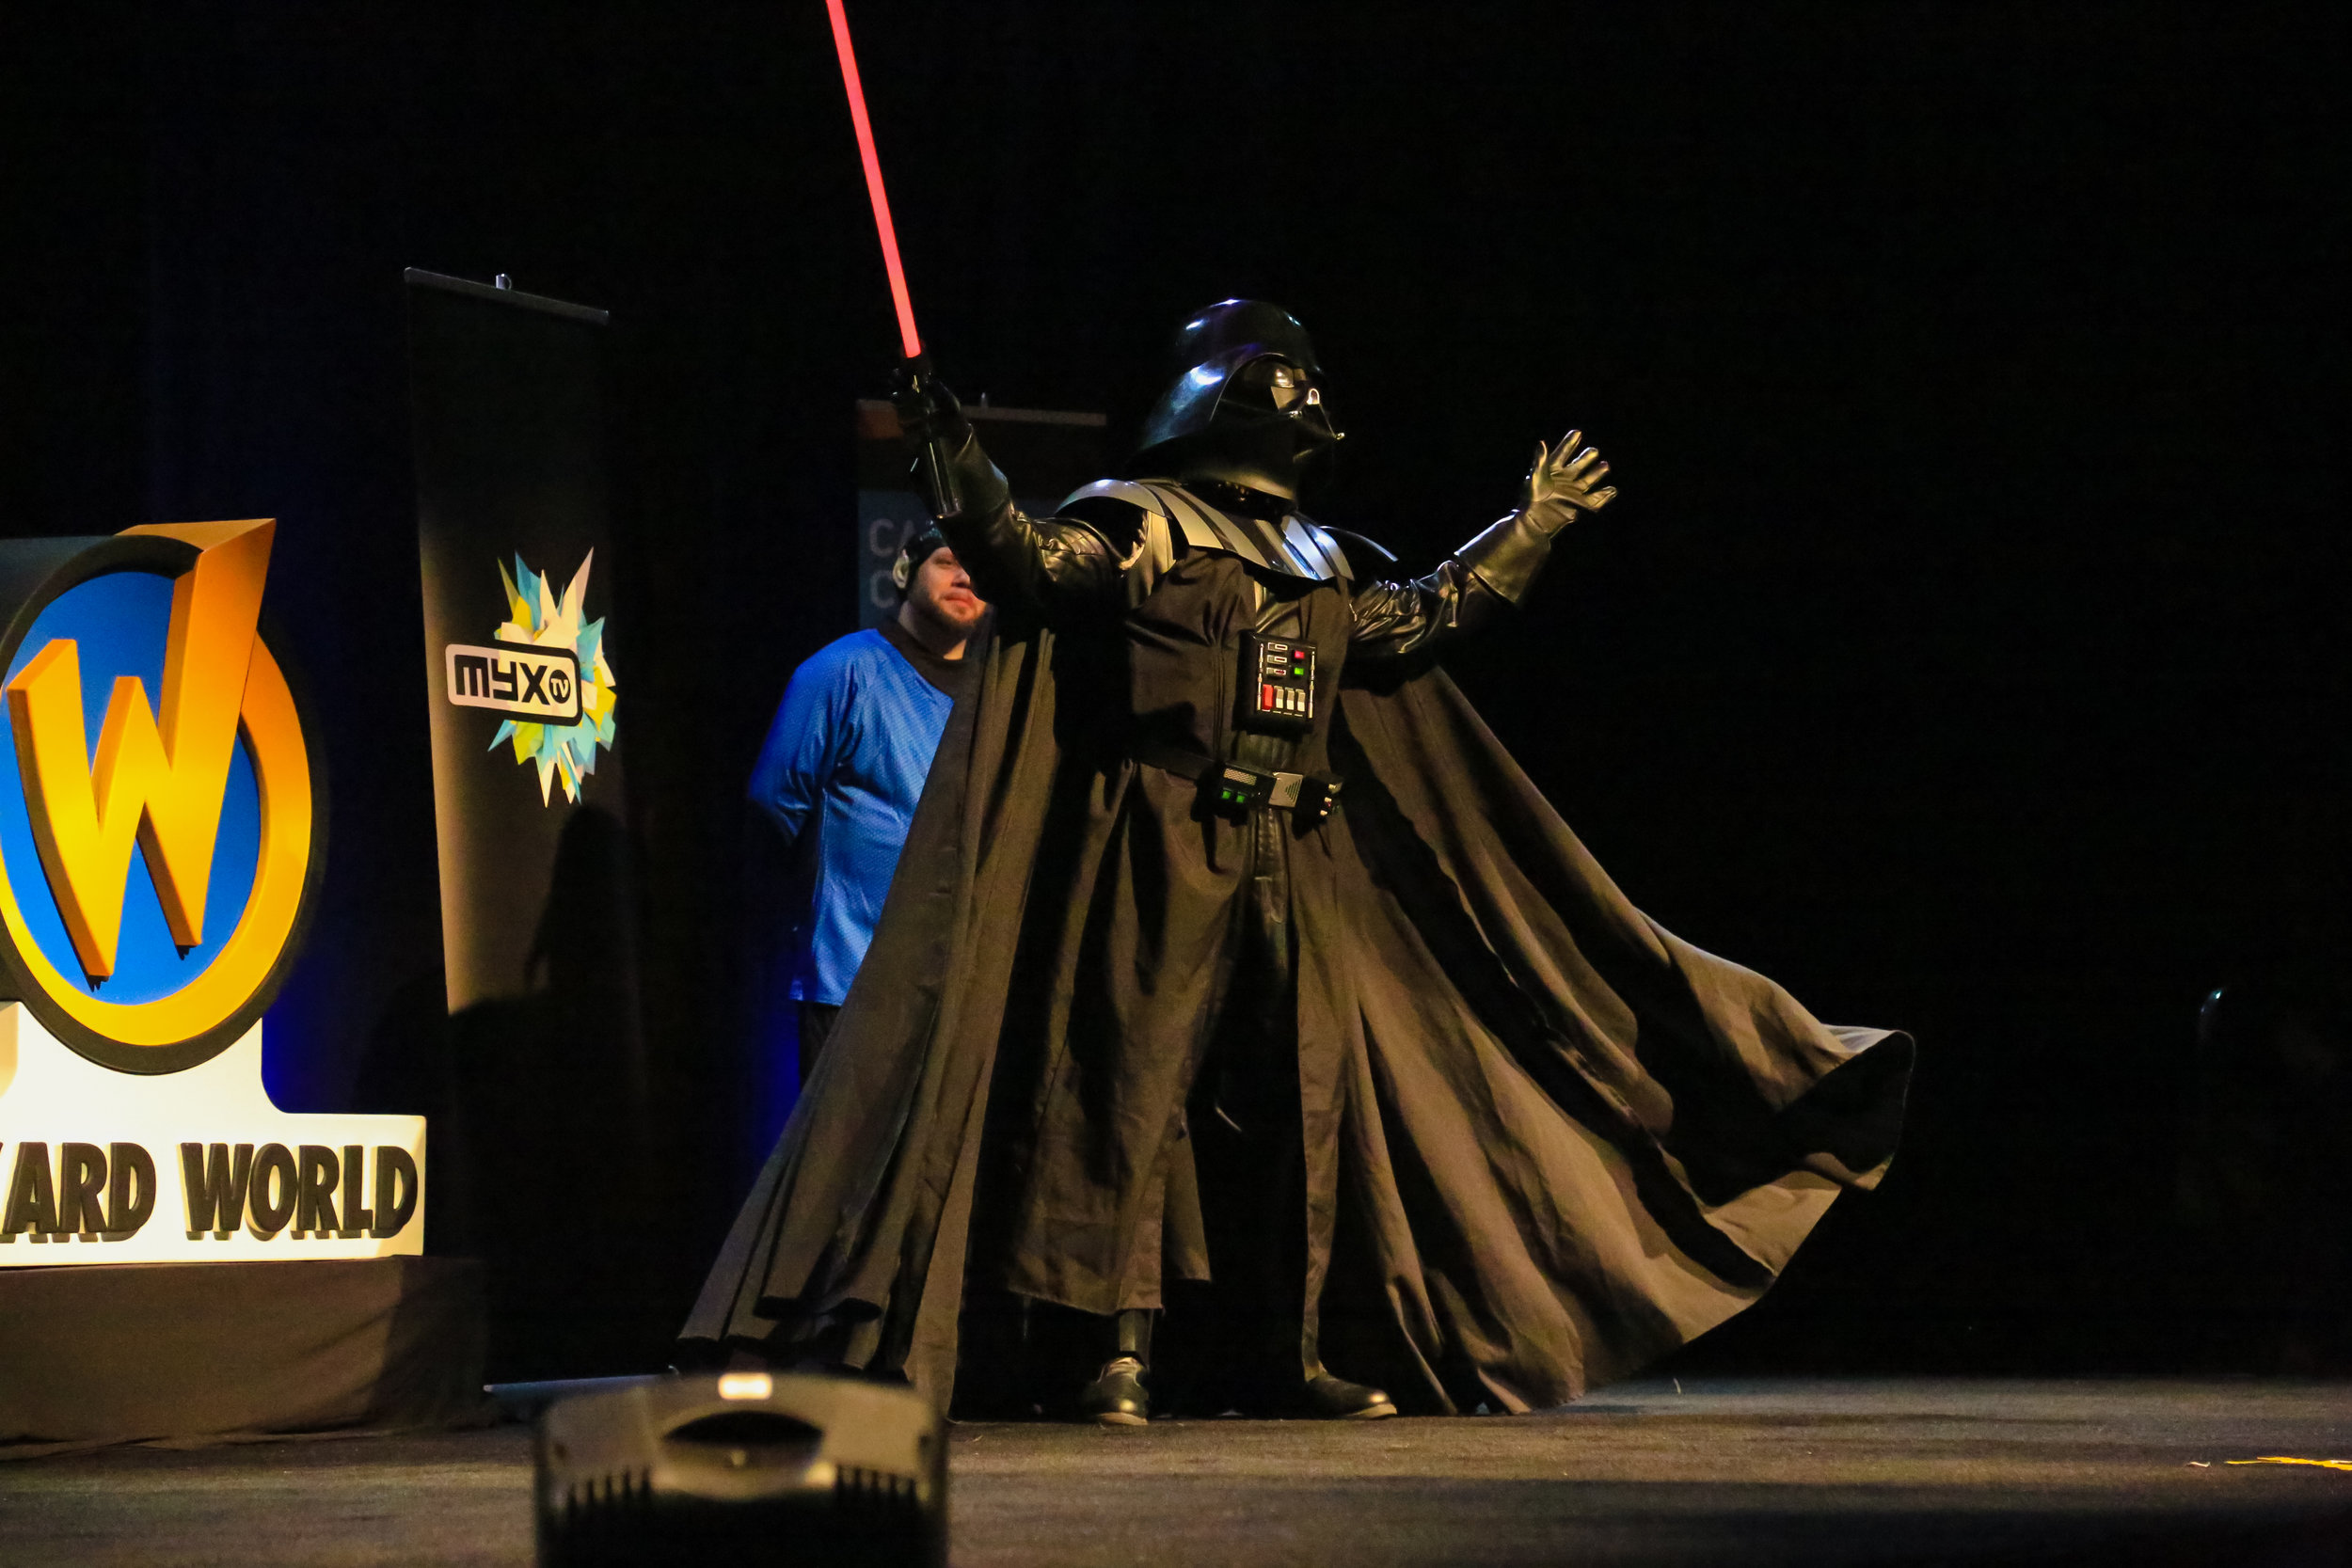 Cosplay Compitition at Wizard World Comic Con in Sacramento